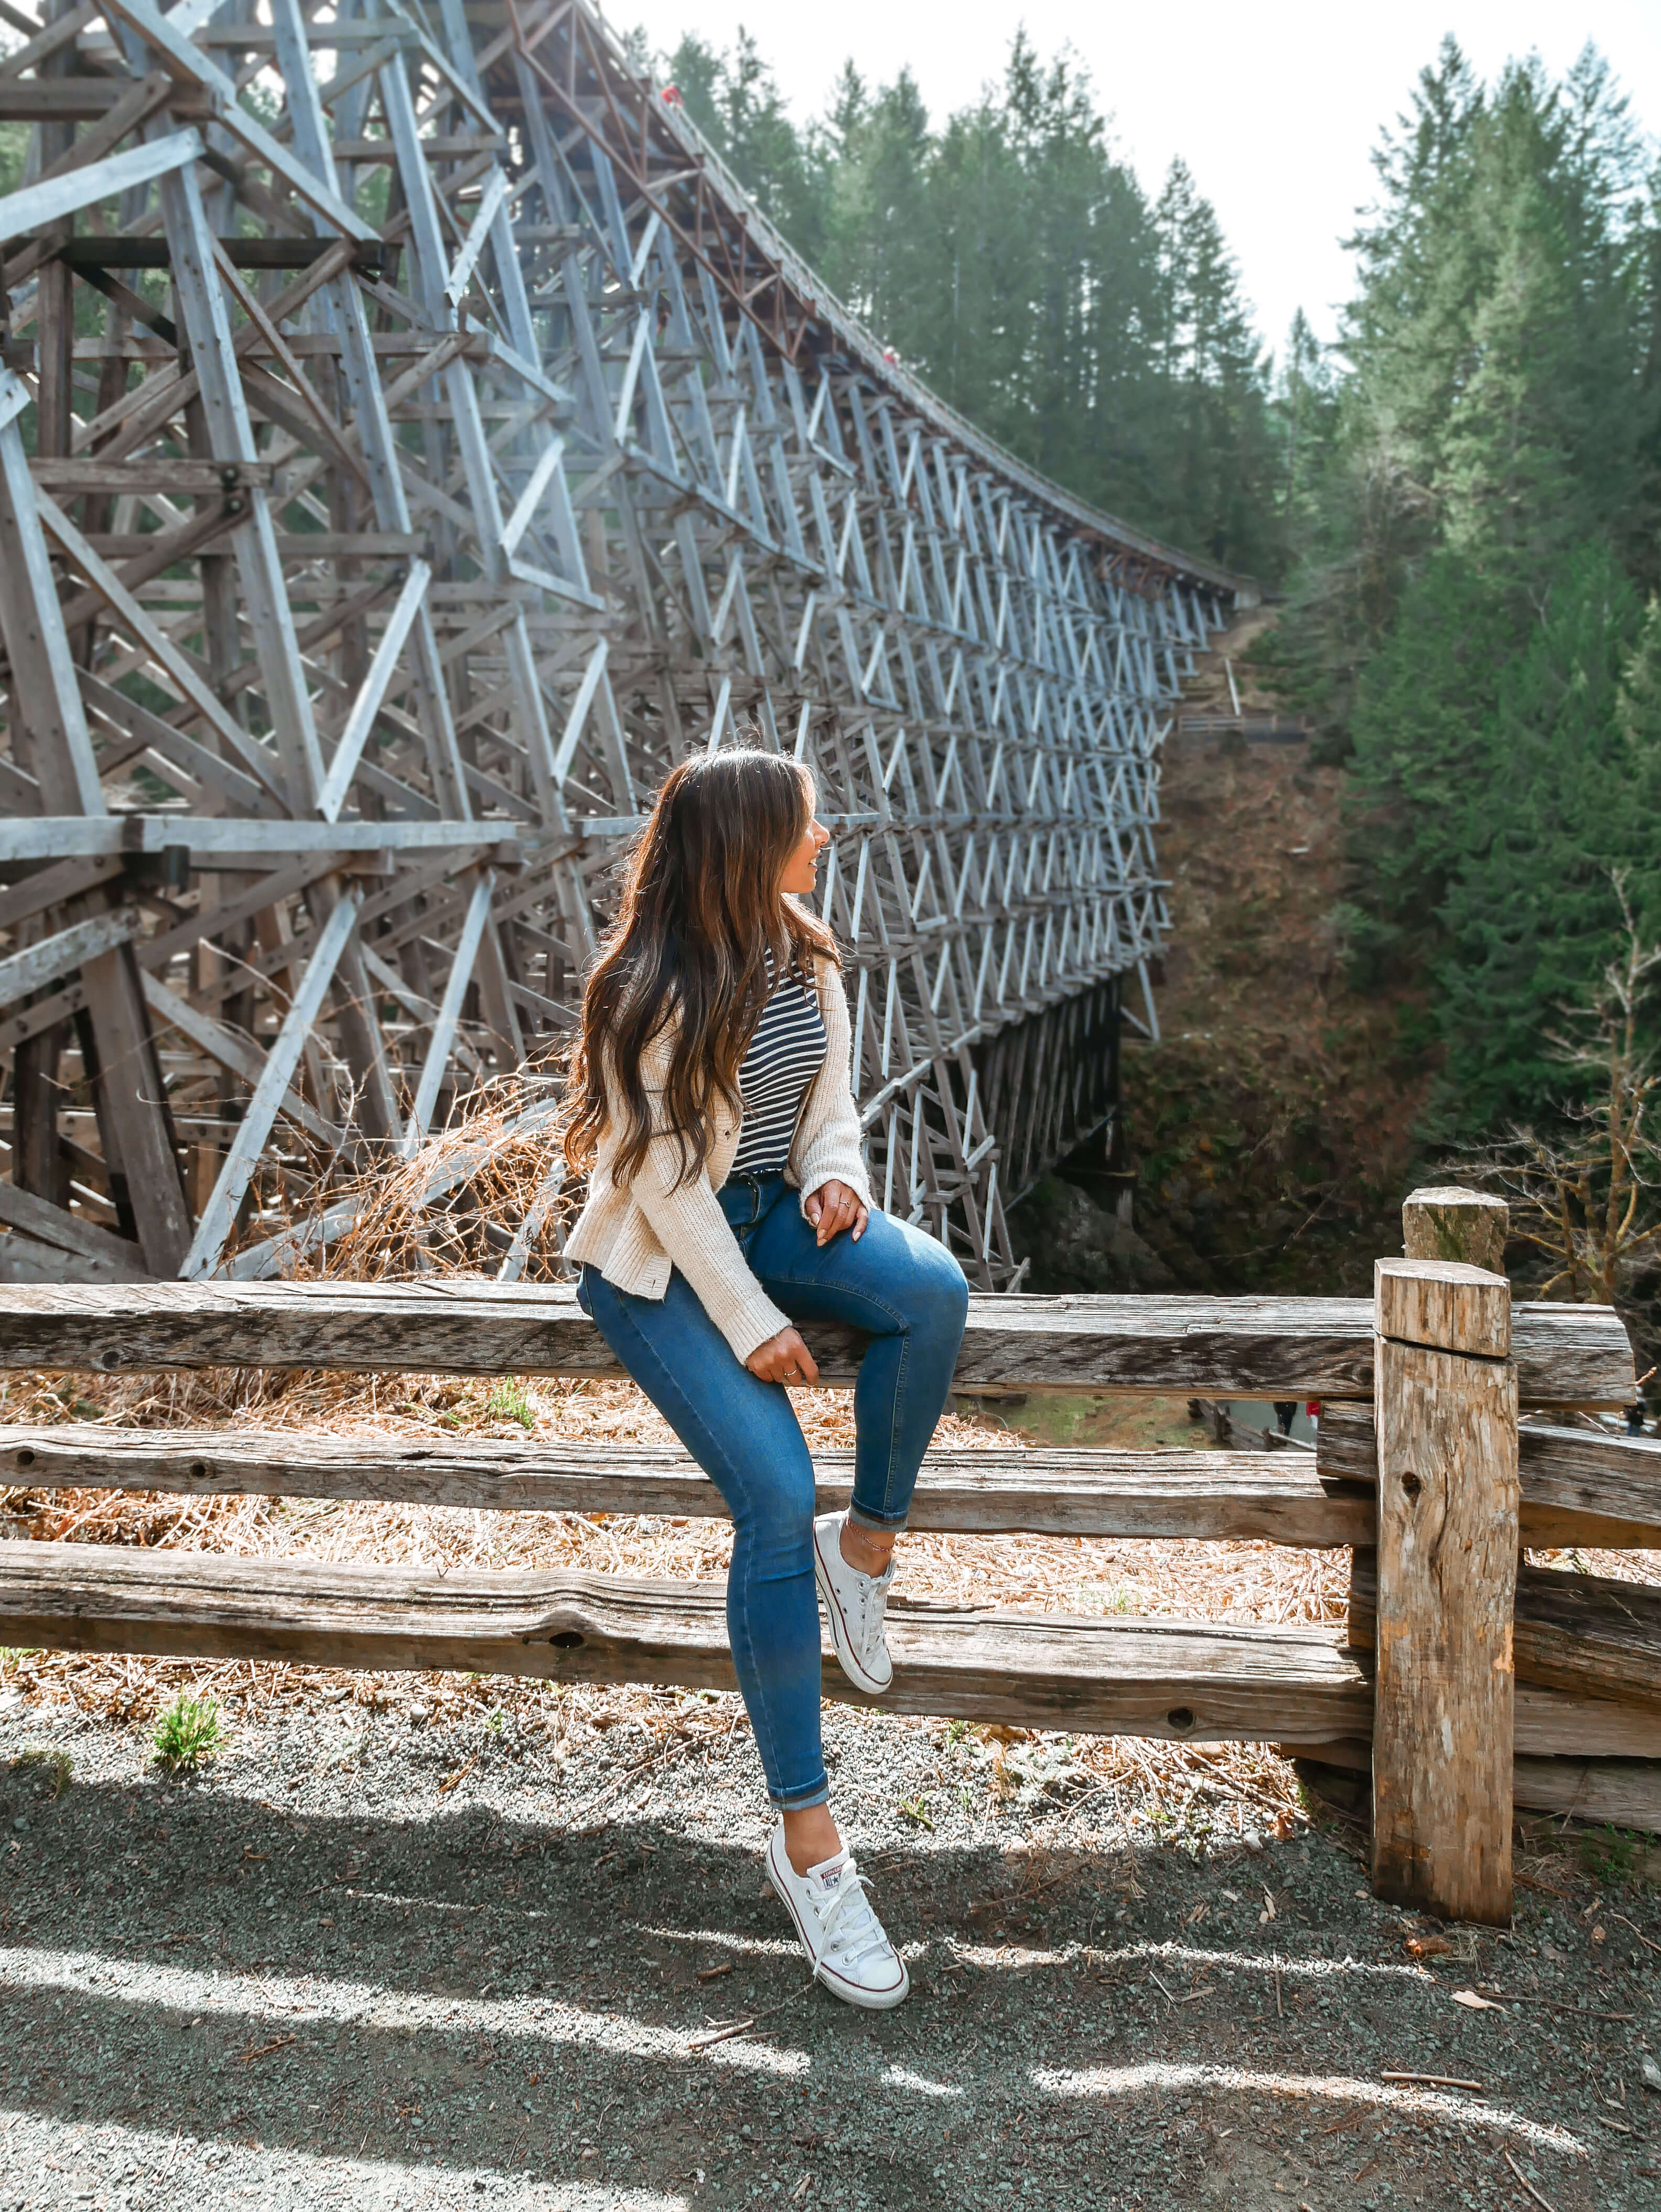 How to spend 3 days in cowichan